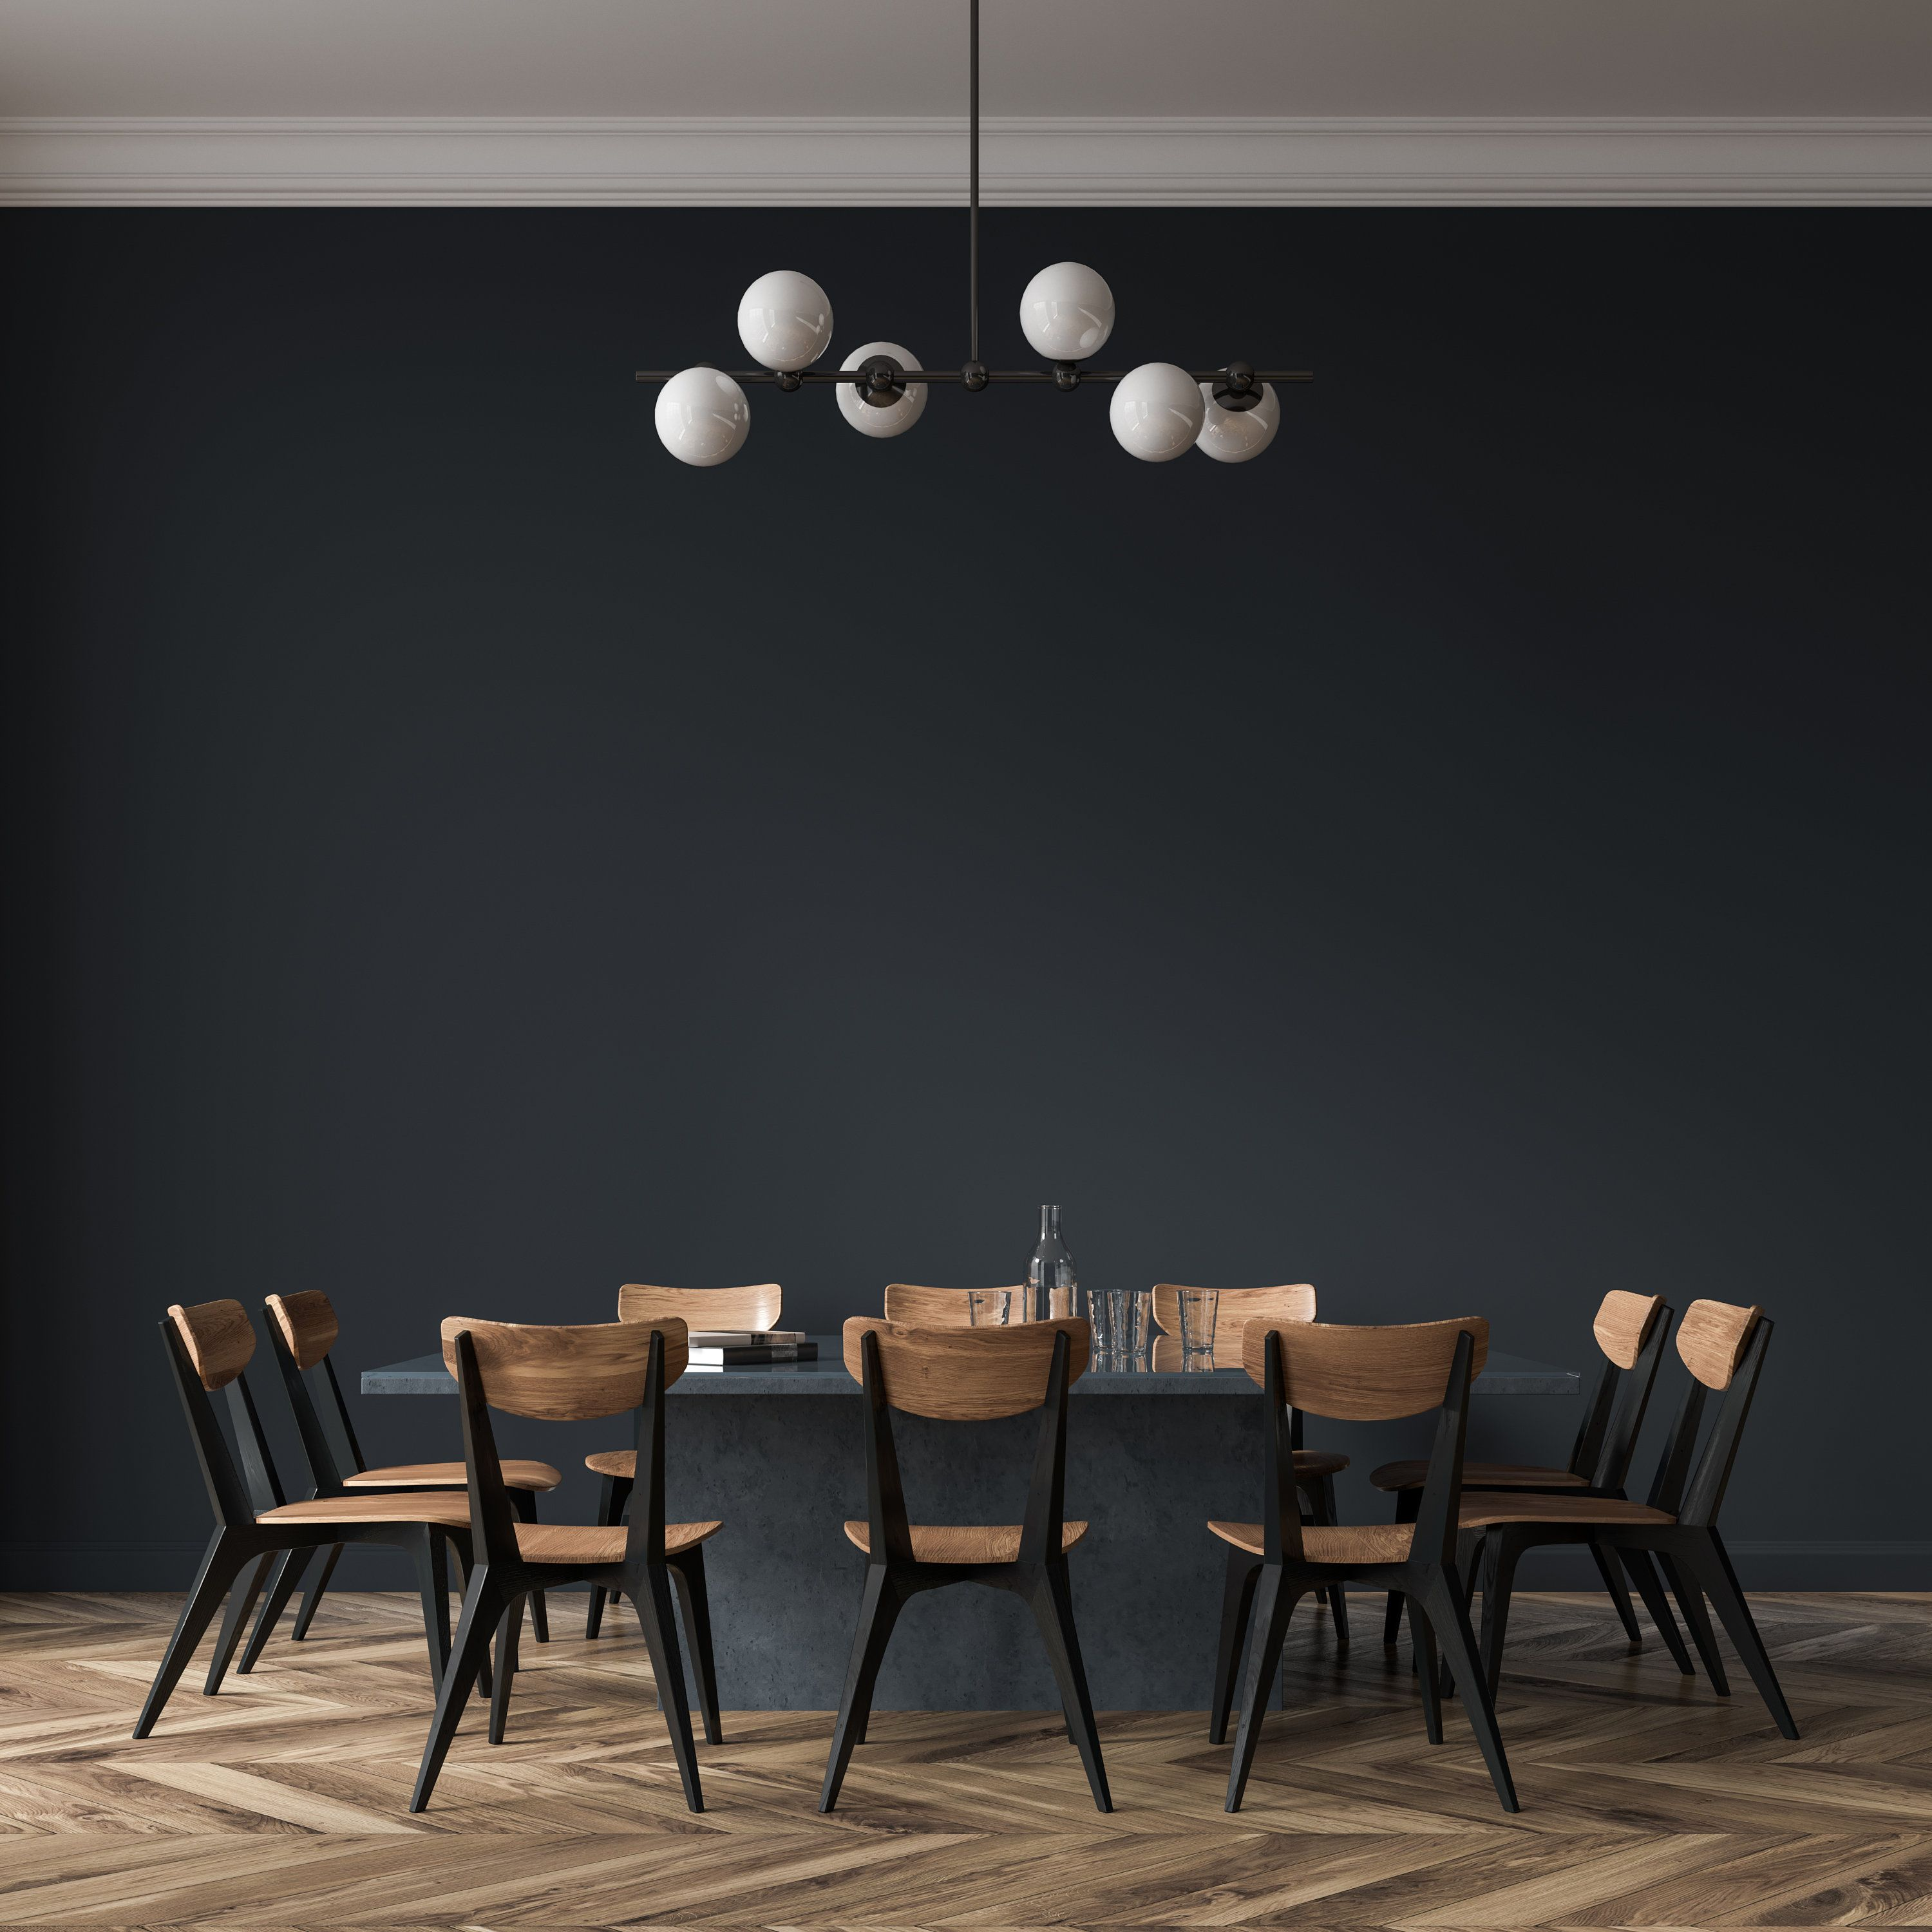 Solid Color Peel And Stick Wallpaper One Color Removable Etsy Black Dining Room Table Black Dining Room Peel And Stick Wallpaper